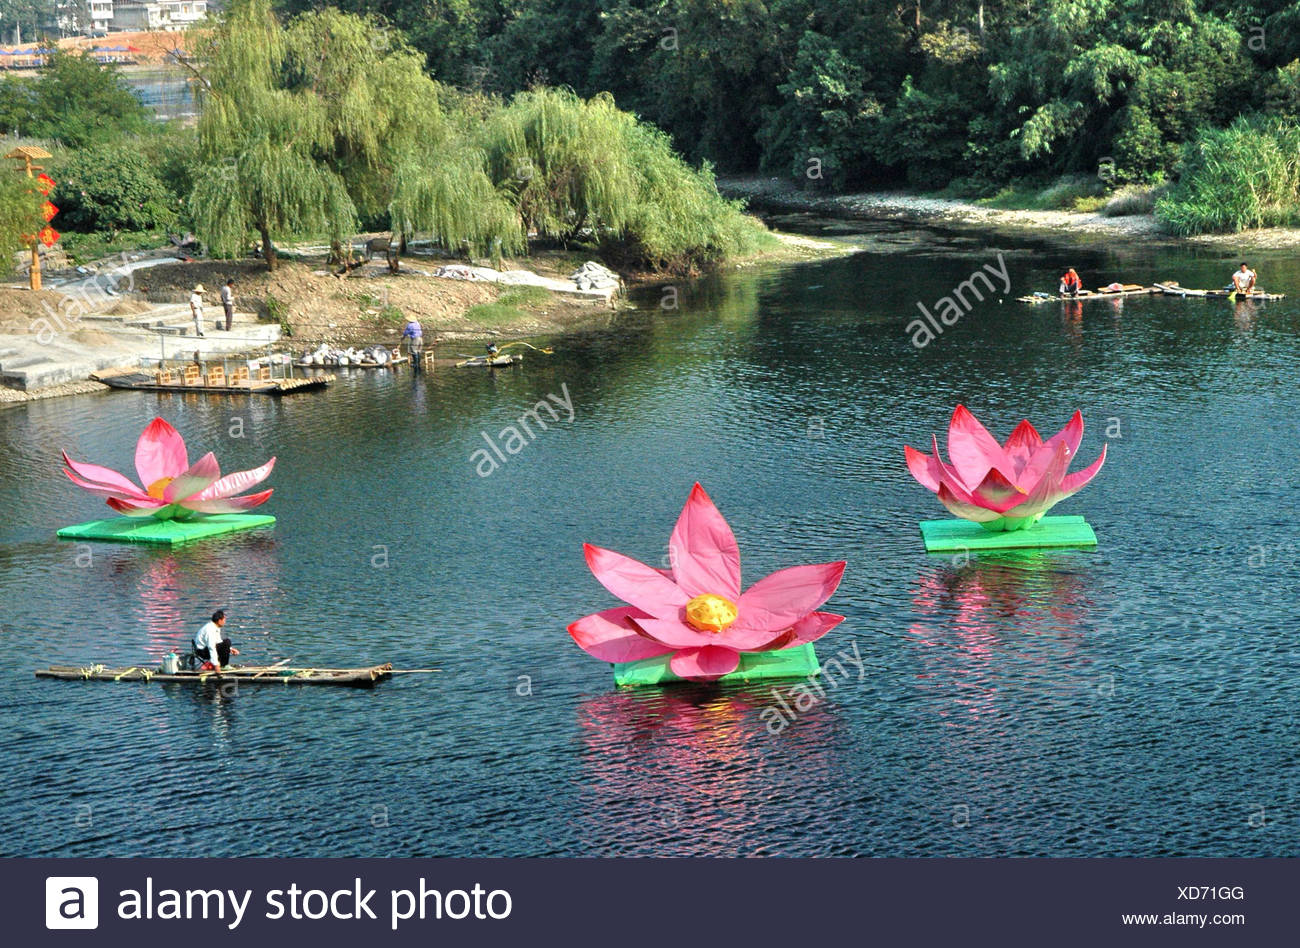 China Guilin Yangshuo Li River Large Lotus Flower Decorations On